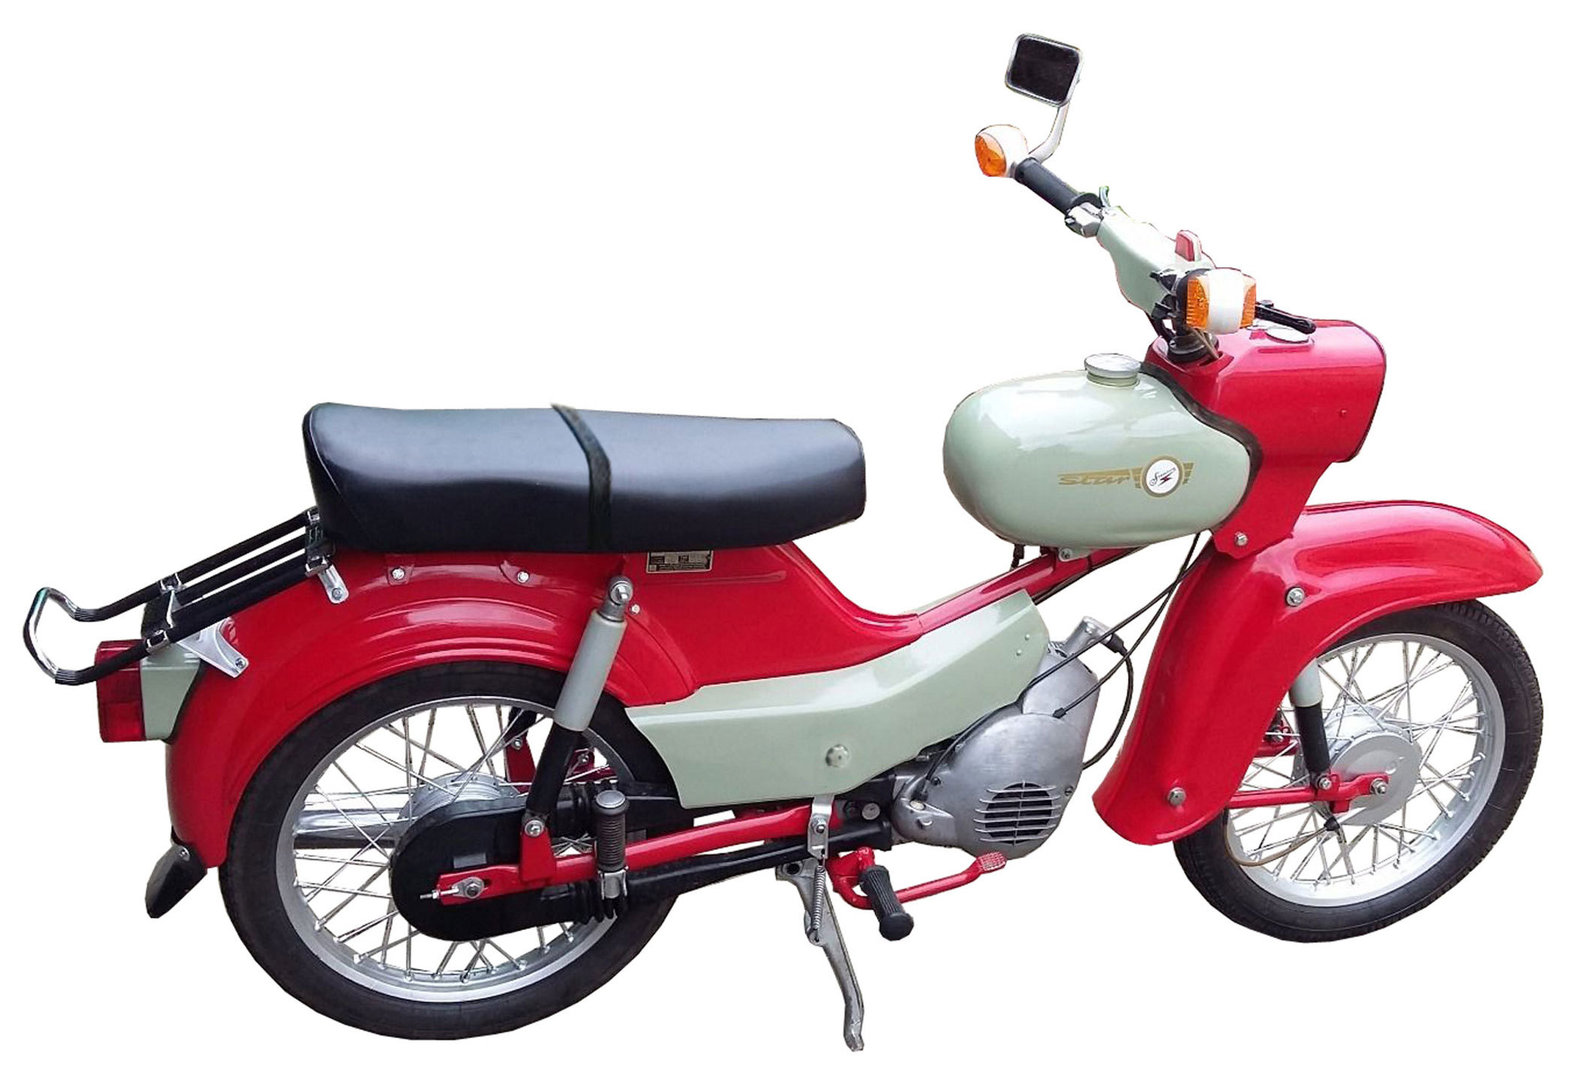 sitzbank simson star sr4 2 ohne zubeh r ddr moped. Black Bedroom Furniture Sets. Home Design Ideas